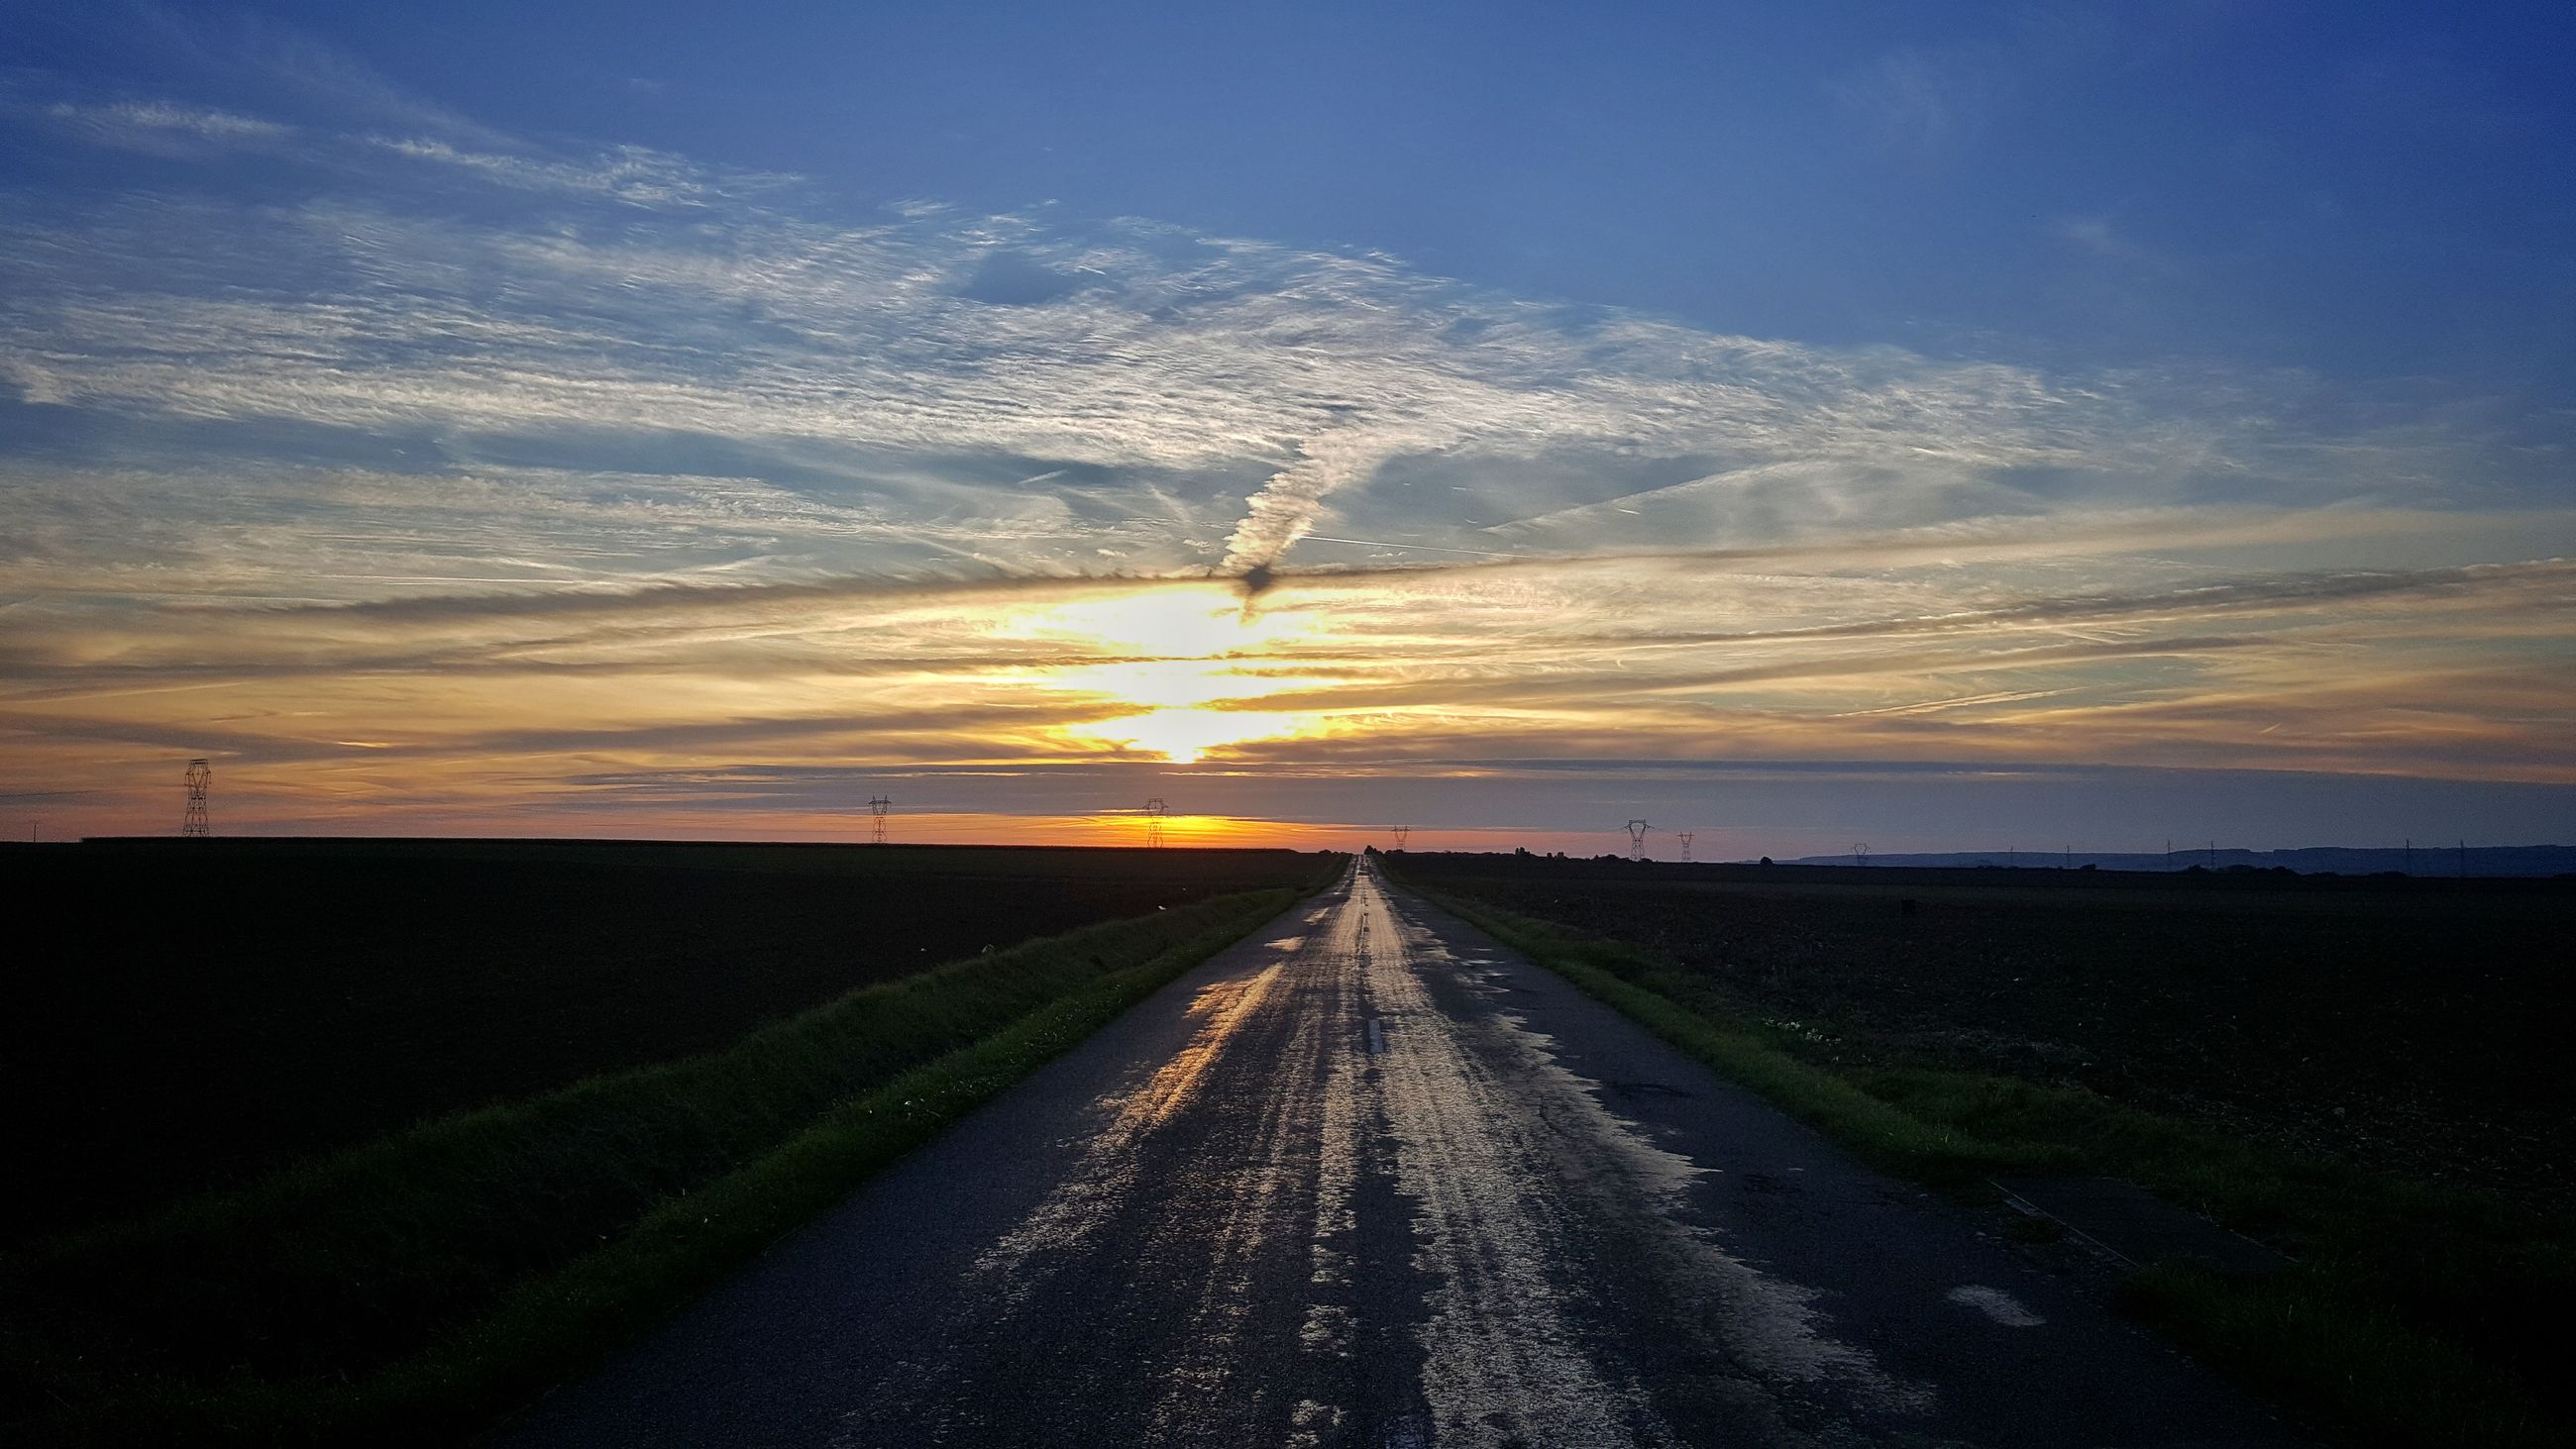 sunset, road, sky, the way forward, no people, scenics, nature, tranquil scene, landscape, outdoors, beauty in nature, day